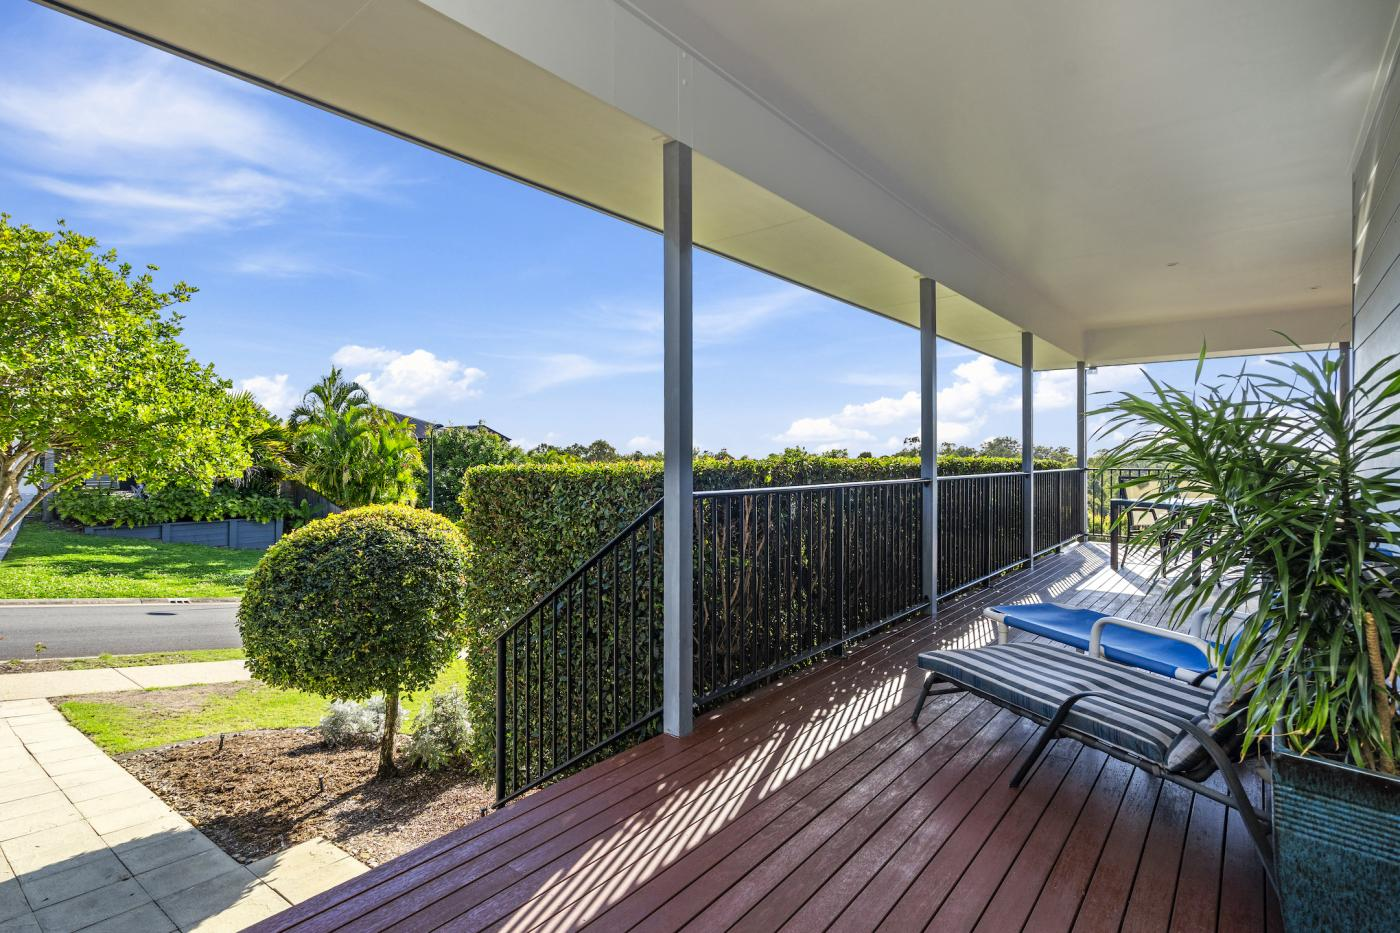 M-Motion Real Estate Agency, 28 Barton Street, Reedy Creek, Qld, 4227, Peggy Ford Best Real Estate Agent Gold Coast